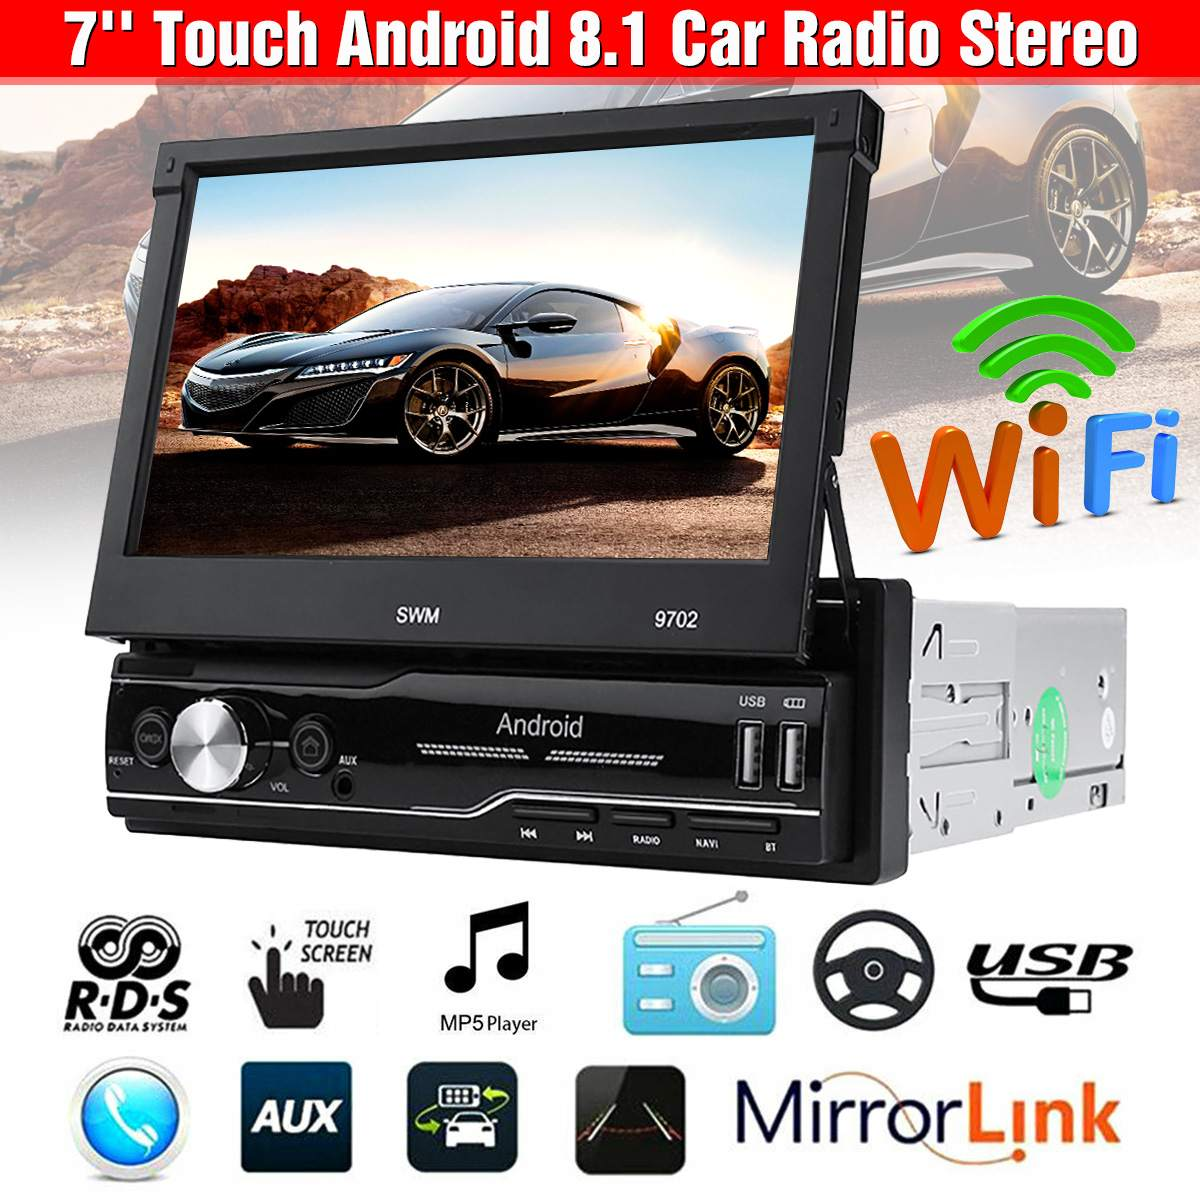 7 1 Din Android 8.1 Car Radio Stereo MP5 Player Multimedia Player GPS bluetooth Wifi FM Touch Screen 4 Core 1+16G Retractable image